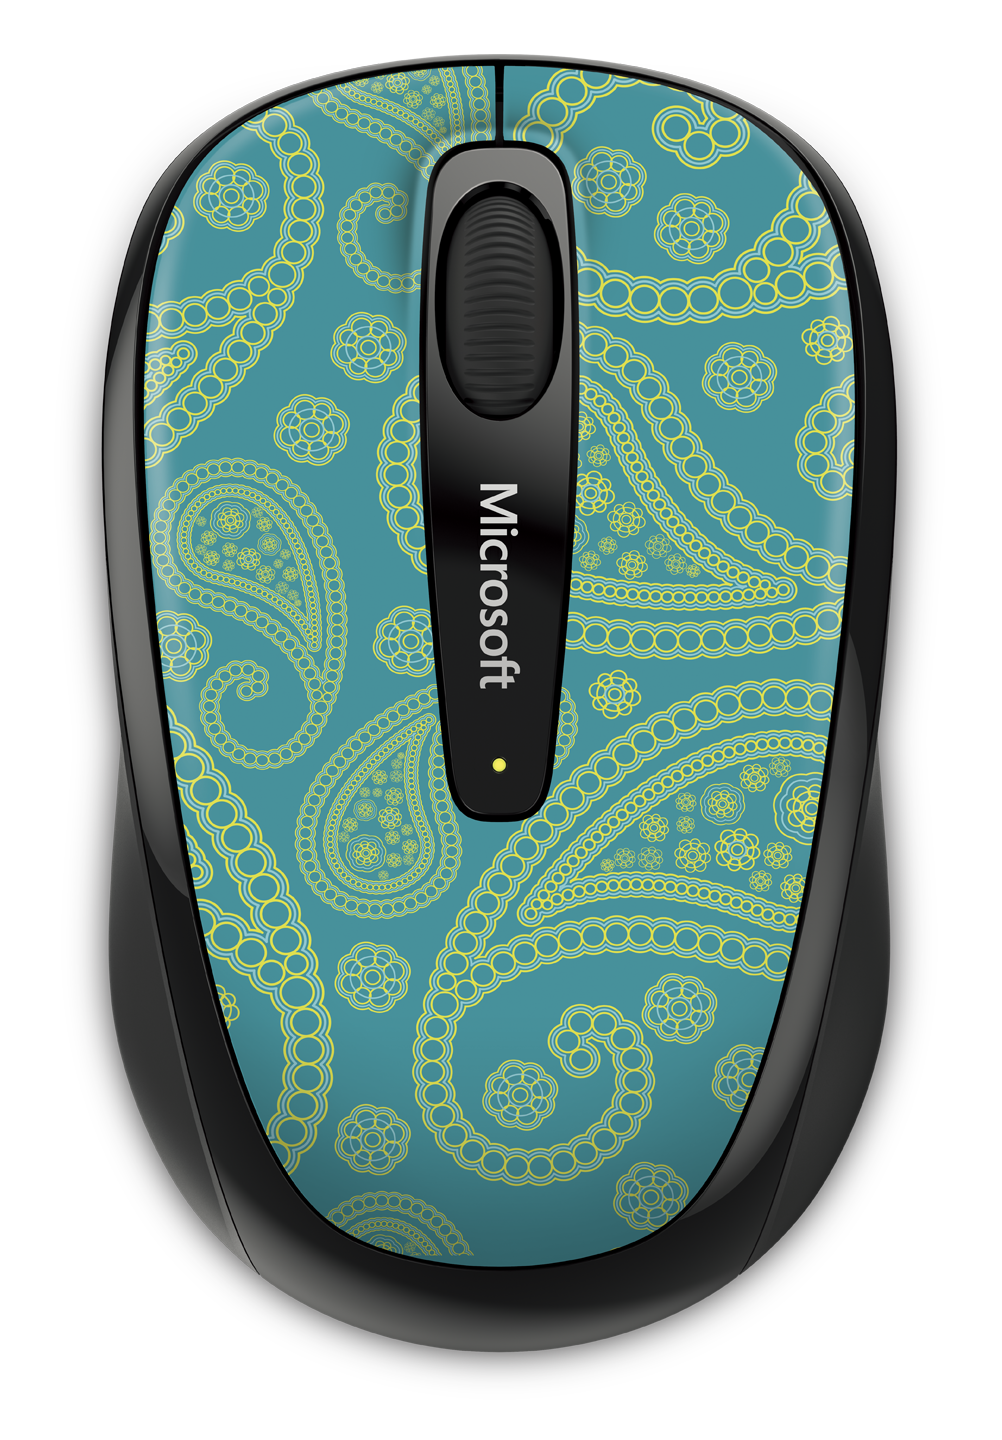 Wireless Mobile Mouse 3500 Limited Edition Paisley